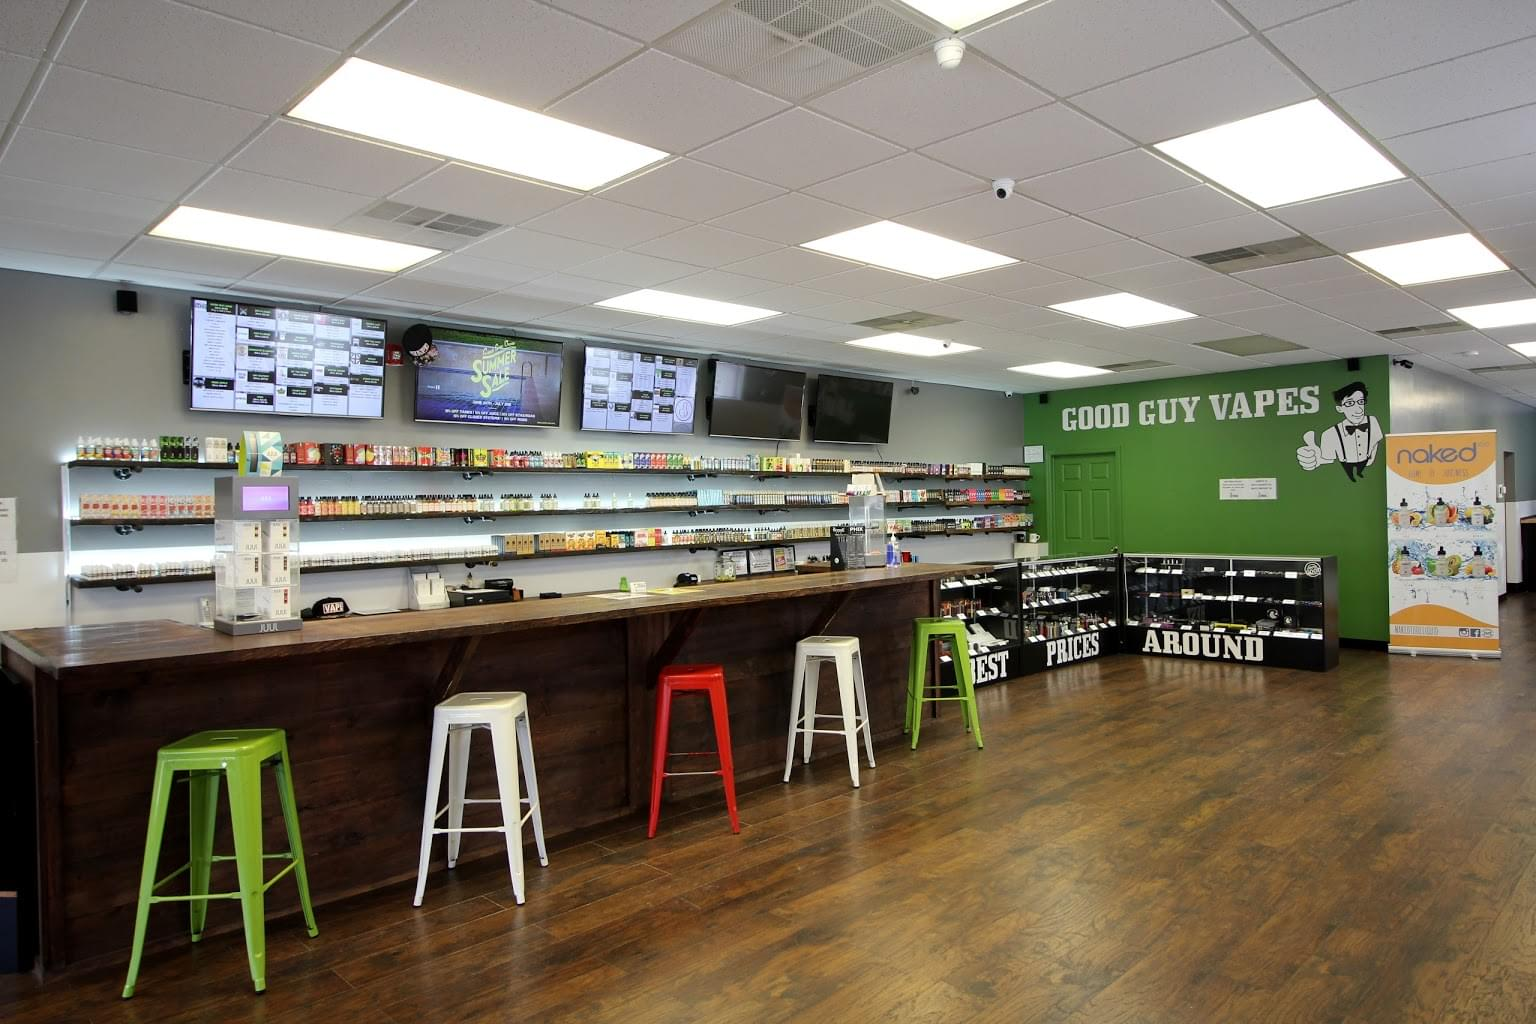 Good Guy Vapes Pompton Lakes, NJ Vaporizer Store